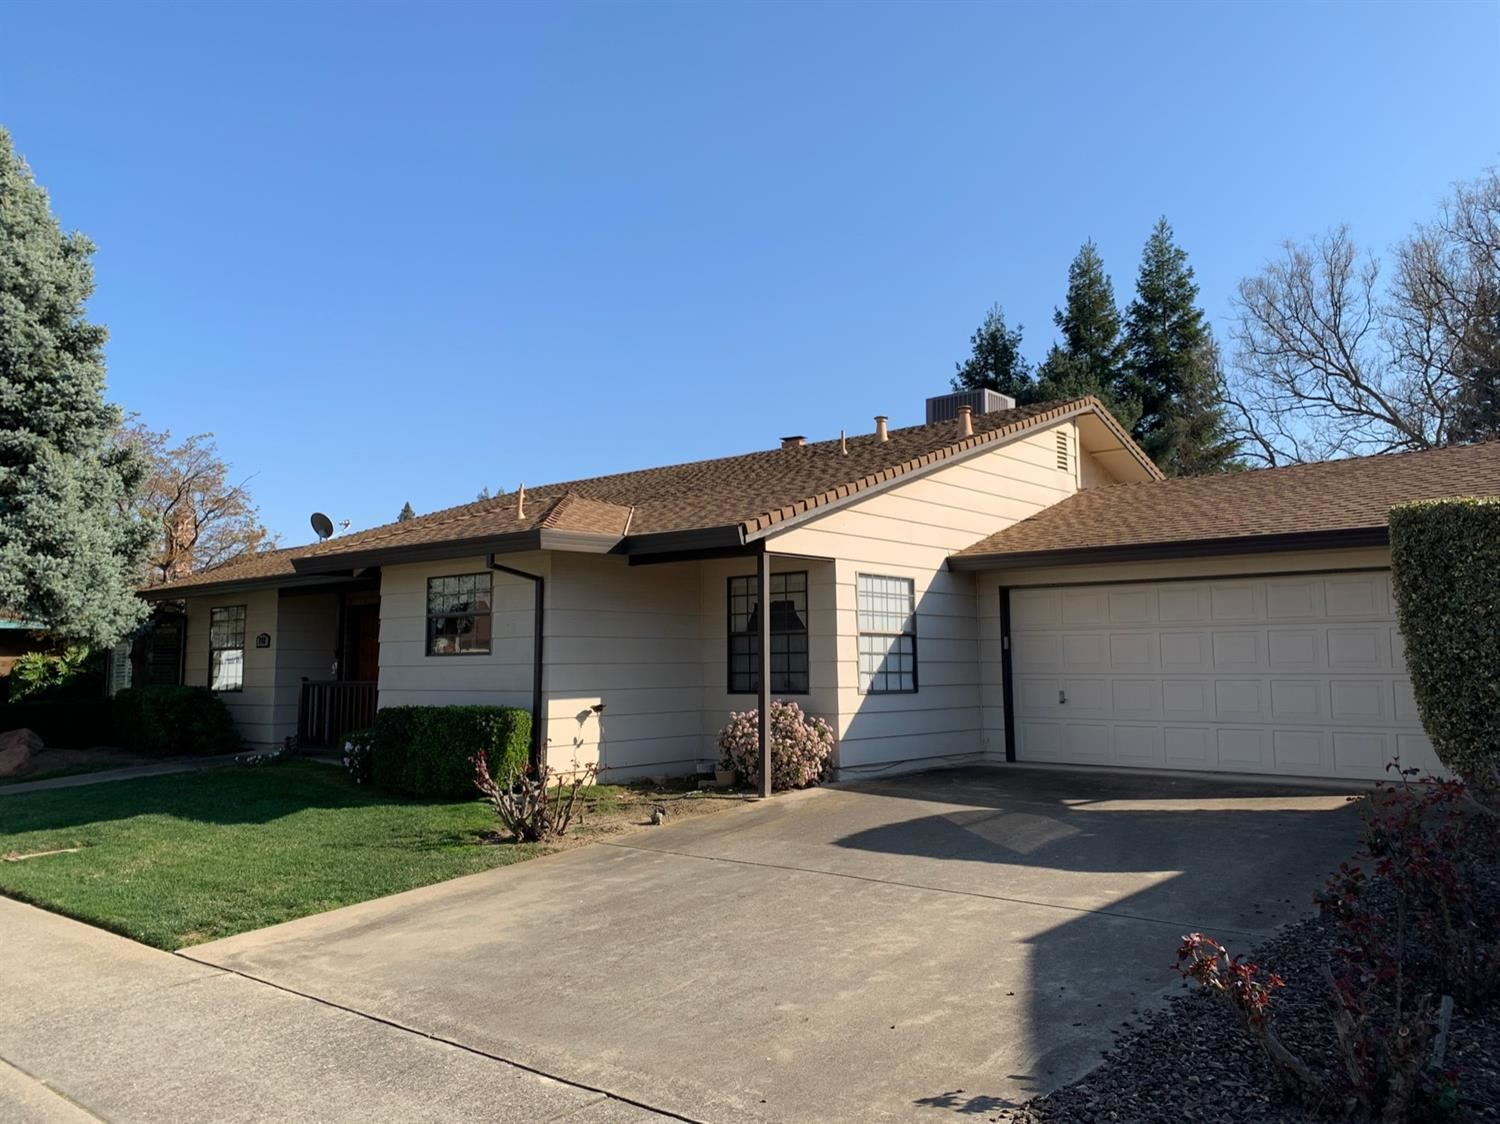 742 Teakwood Drive, Yuba City, CA 95991 - #: 202100743